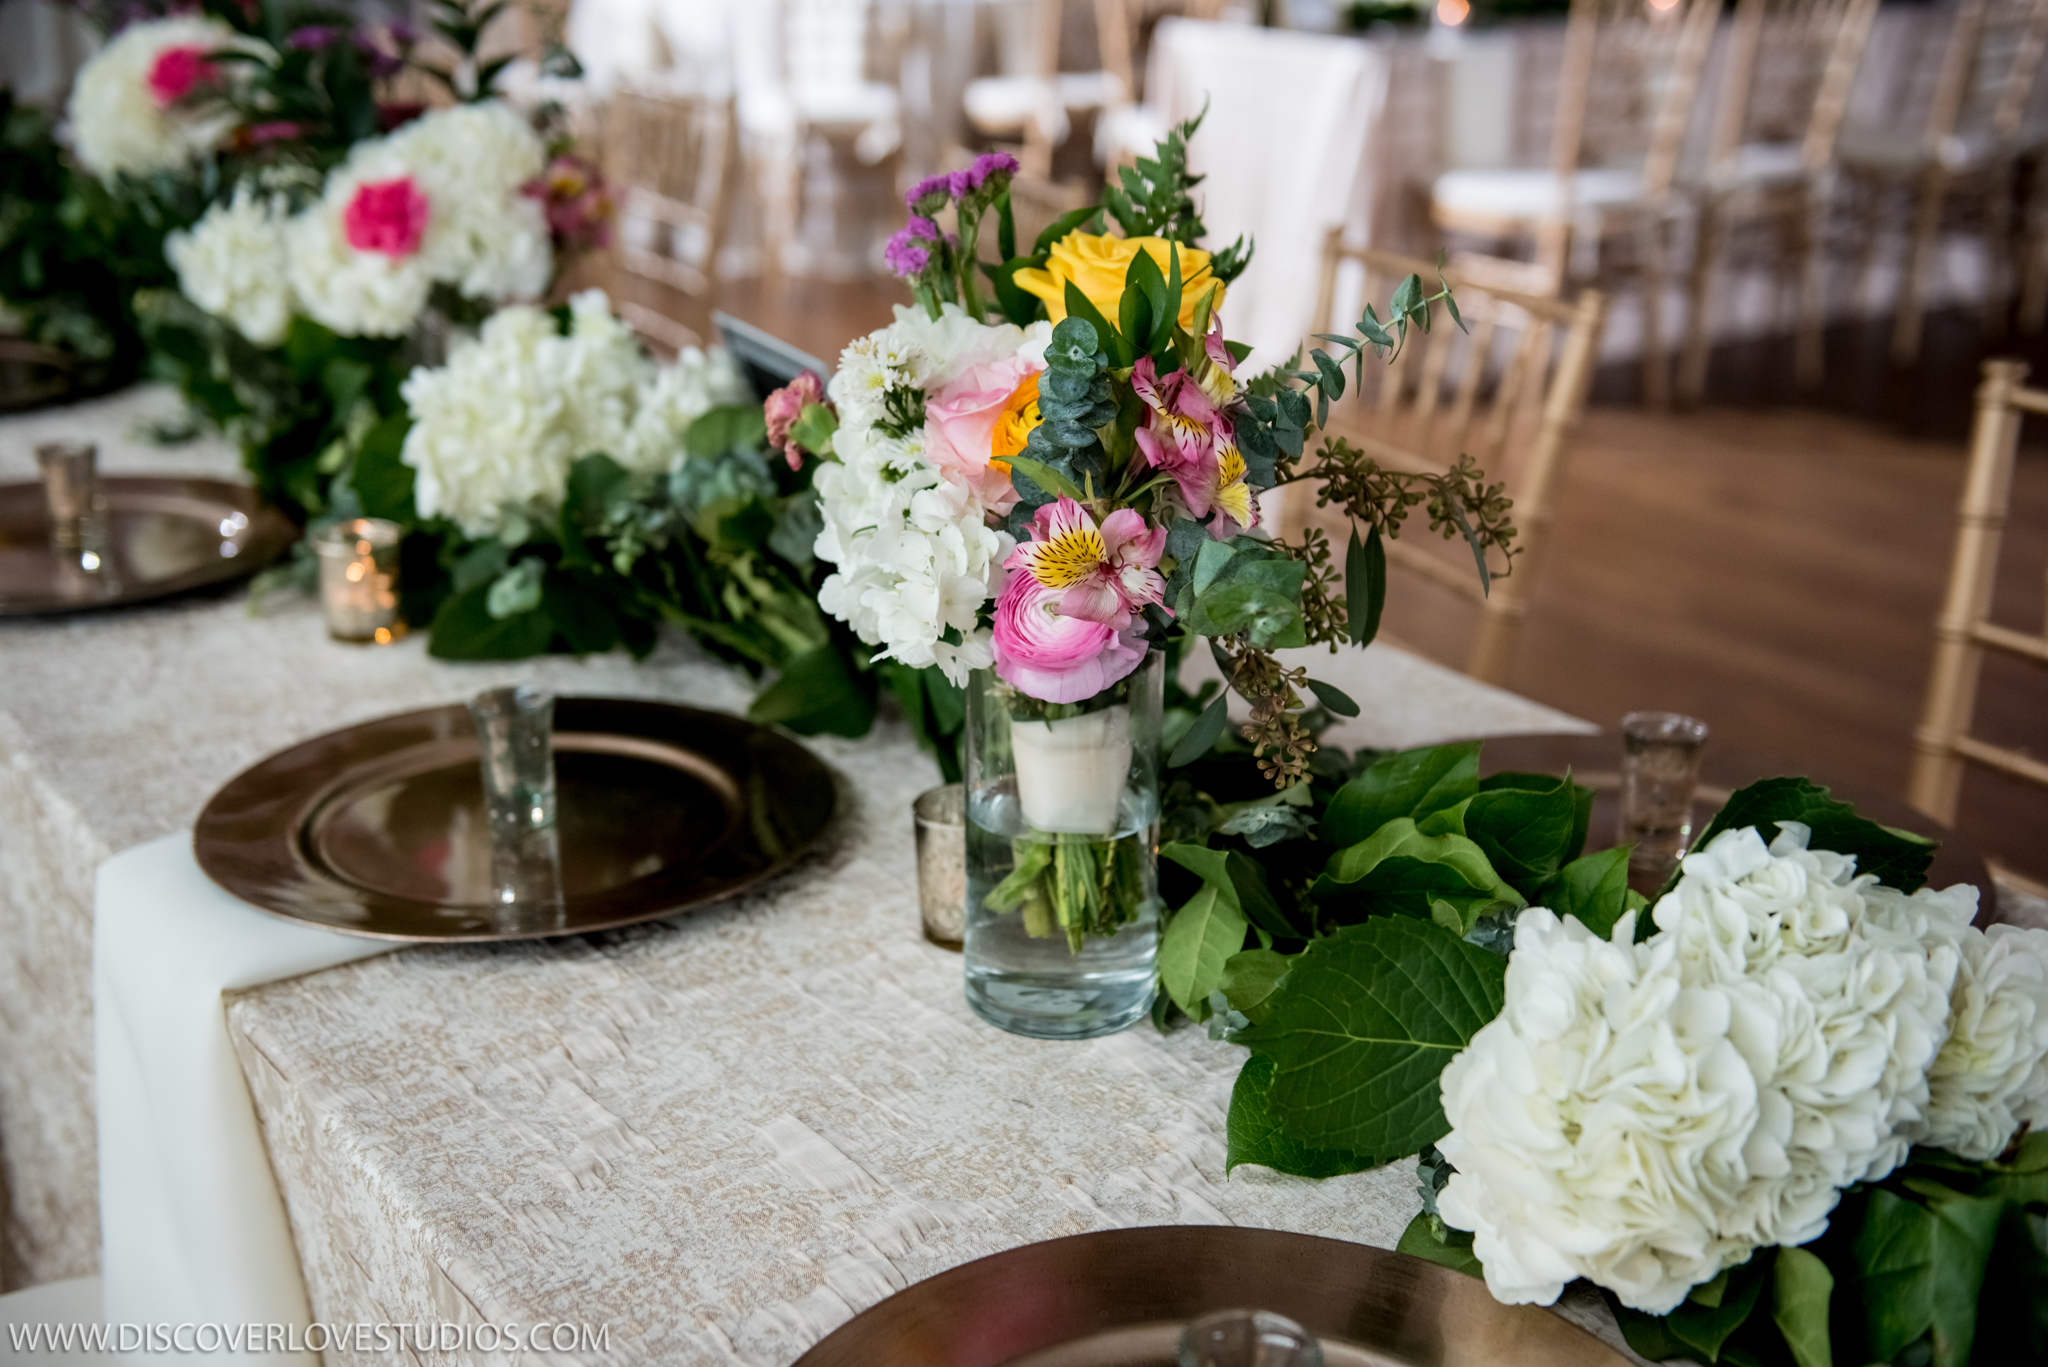 Metallic linens from CE Rentals are accented by gold chargers and colorful florals created by Magnificent Moments Weddings